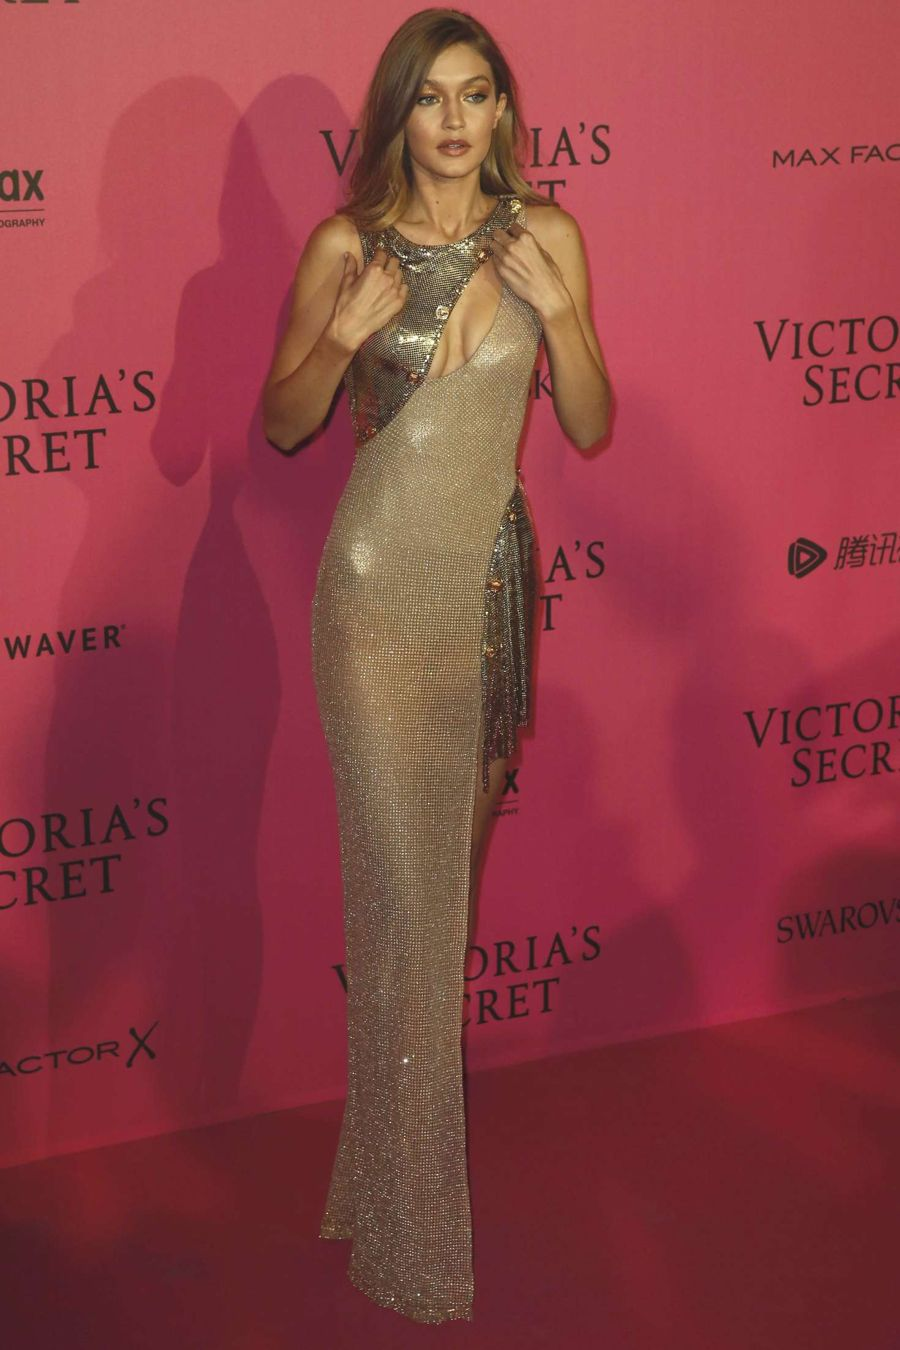 Victoria's Secret Fashion Show 2016 After Party in Paris